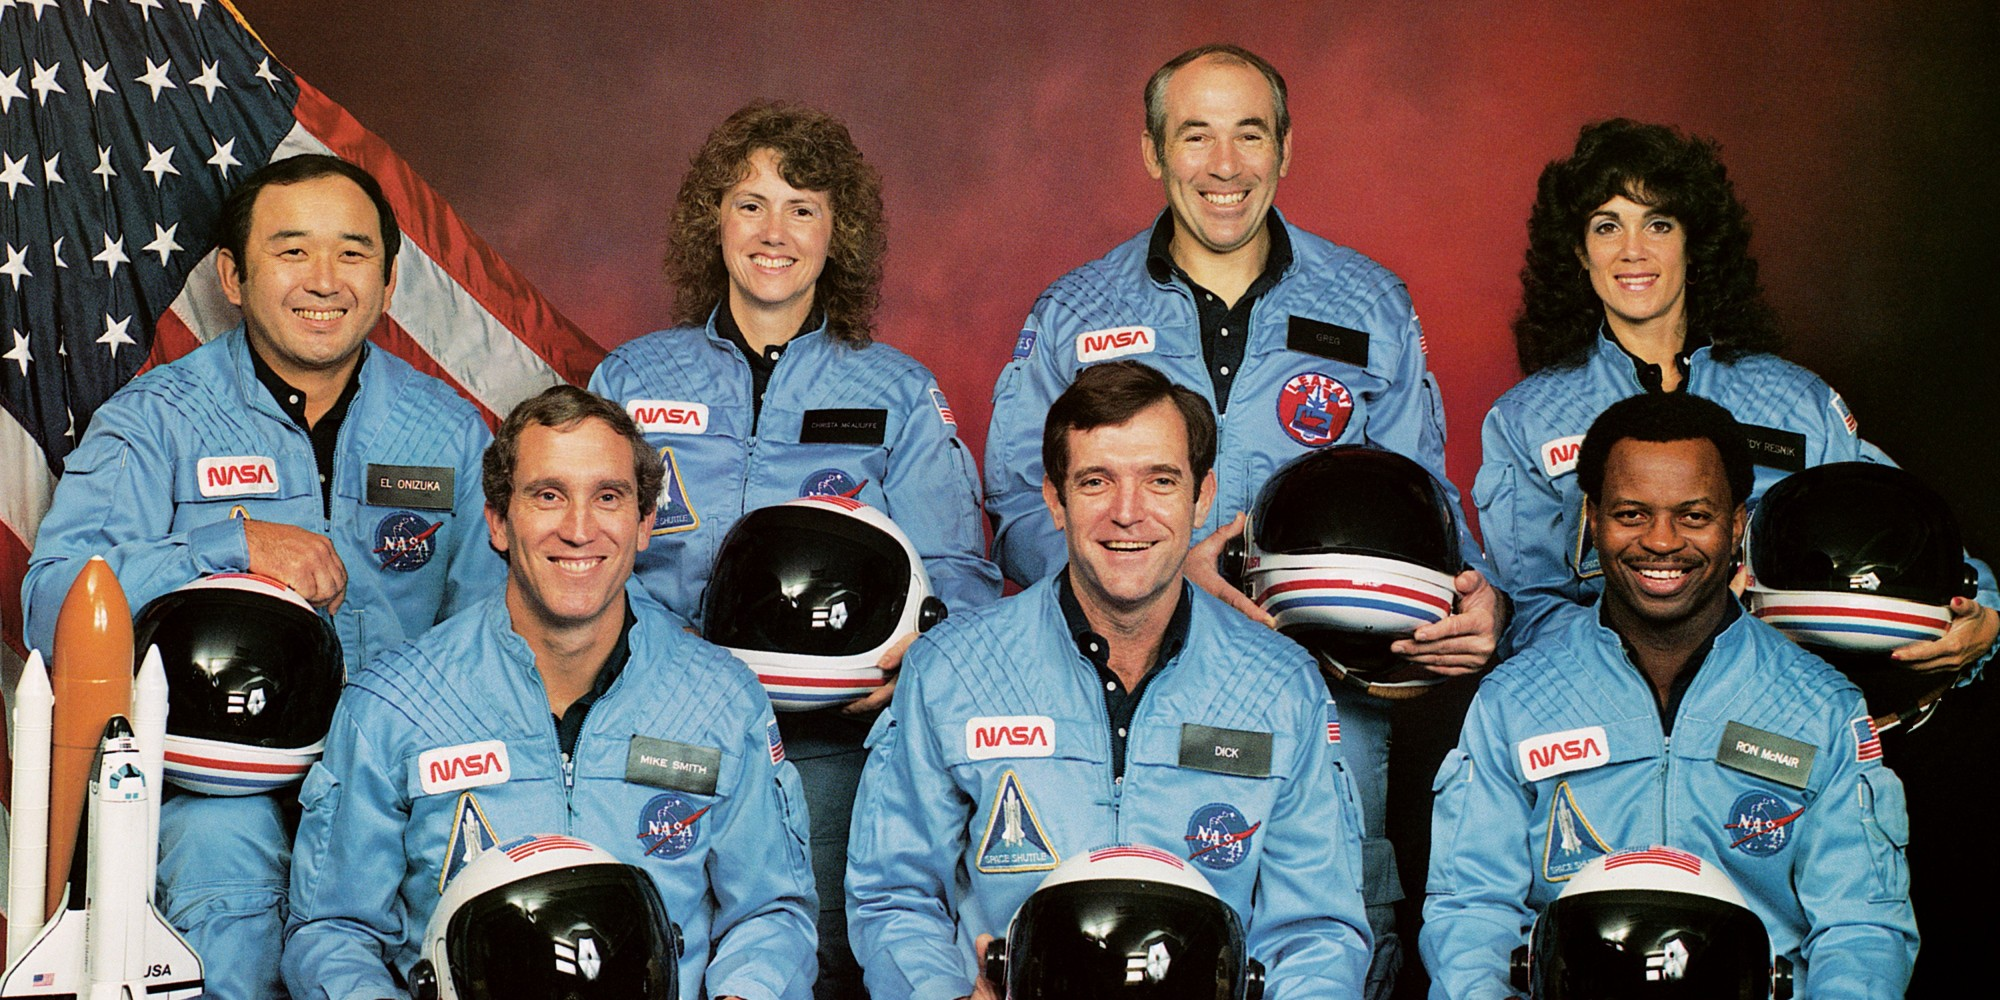 space shuttle challenger mission people - photo #34